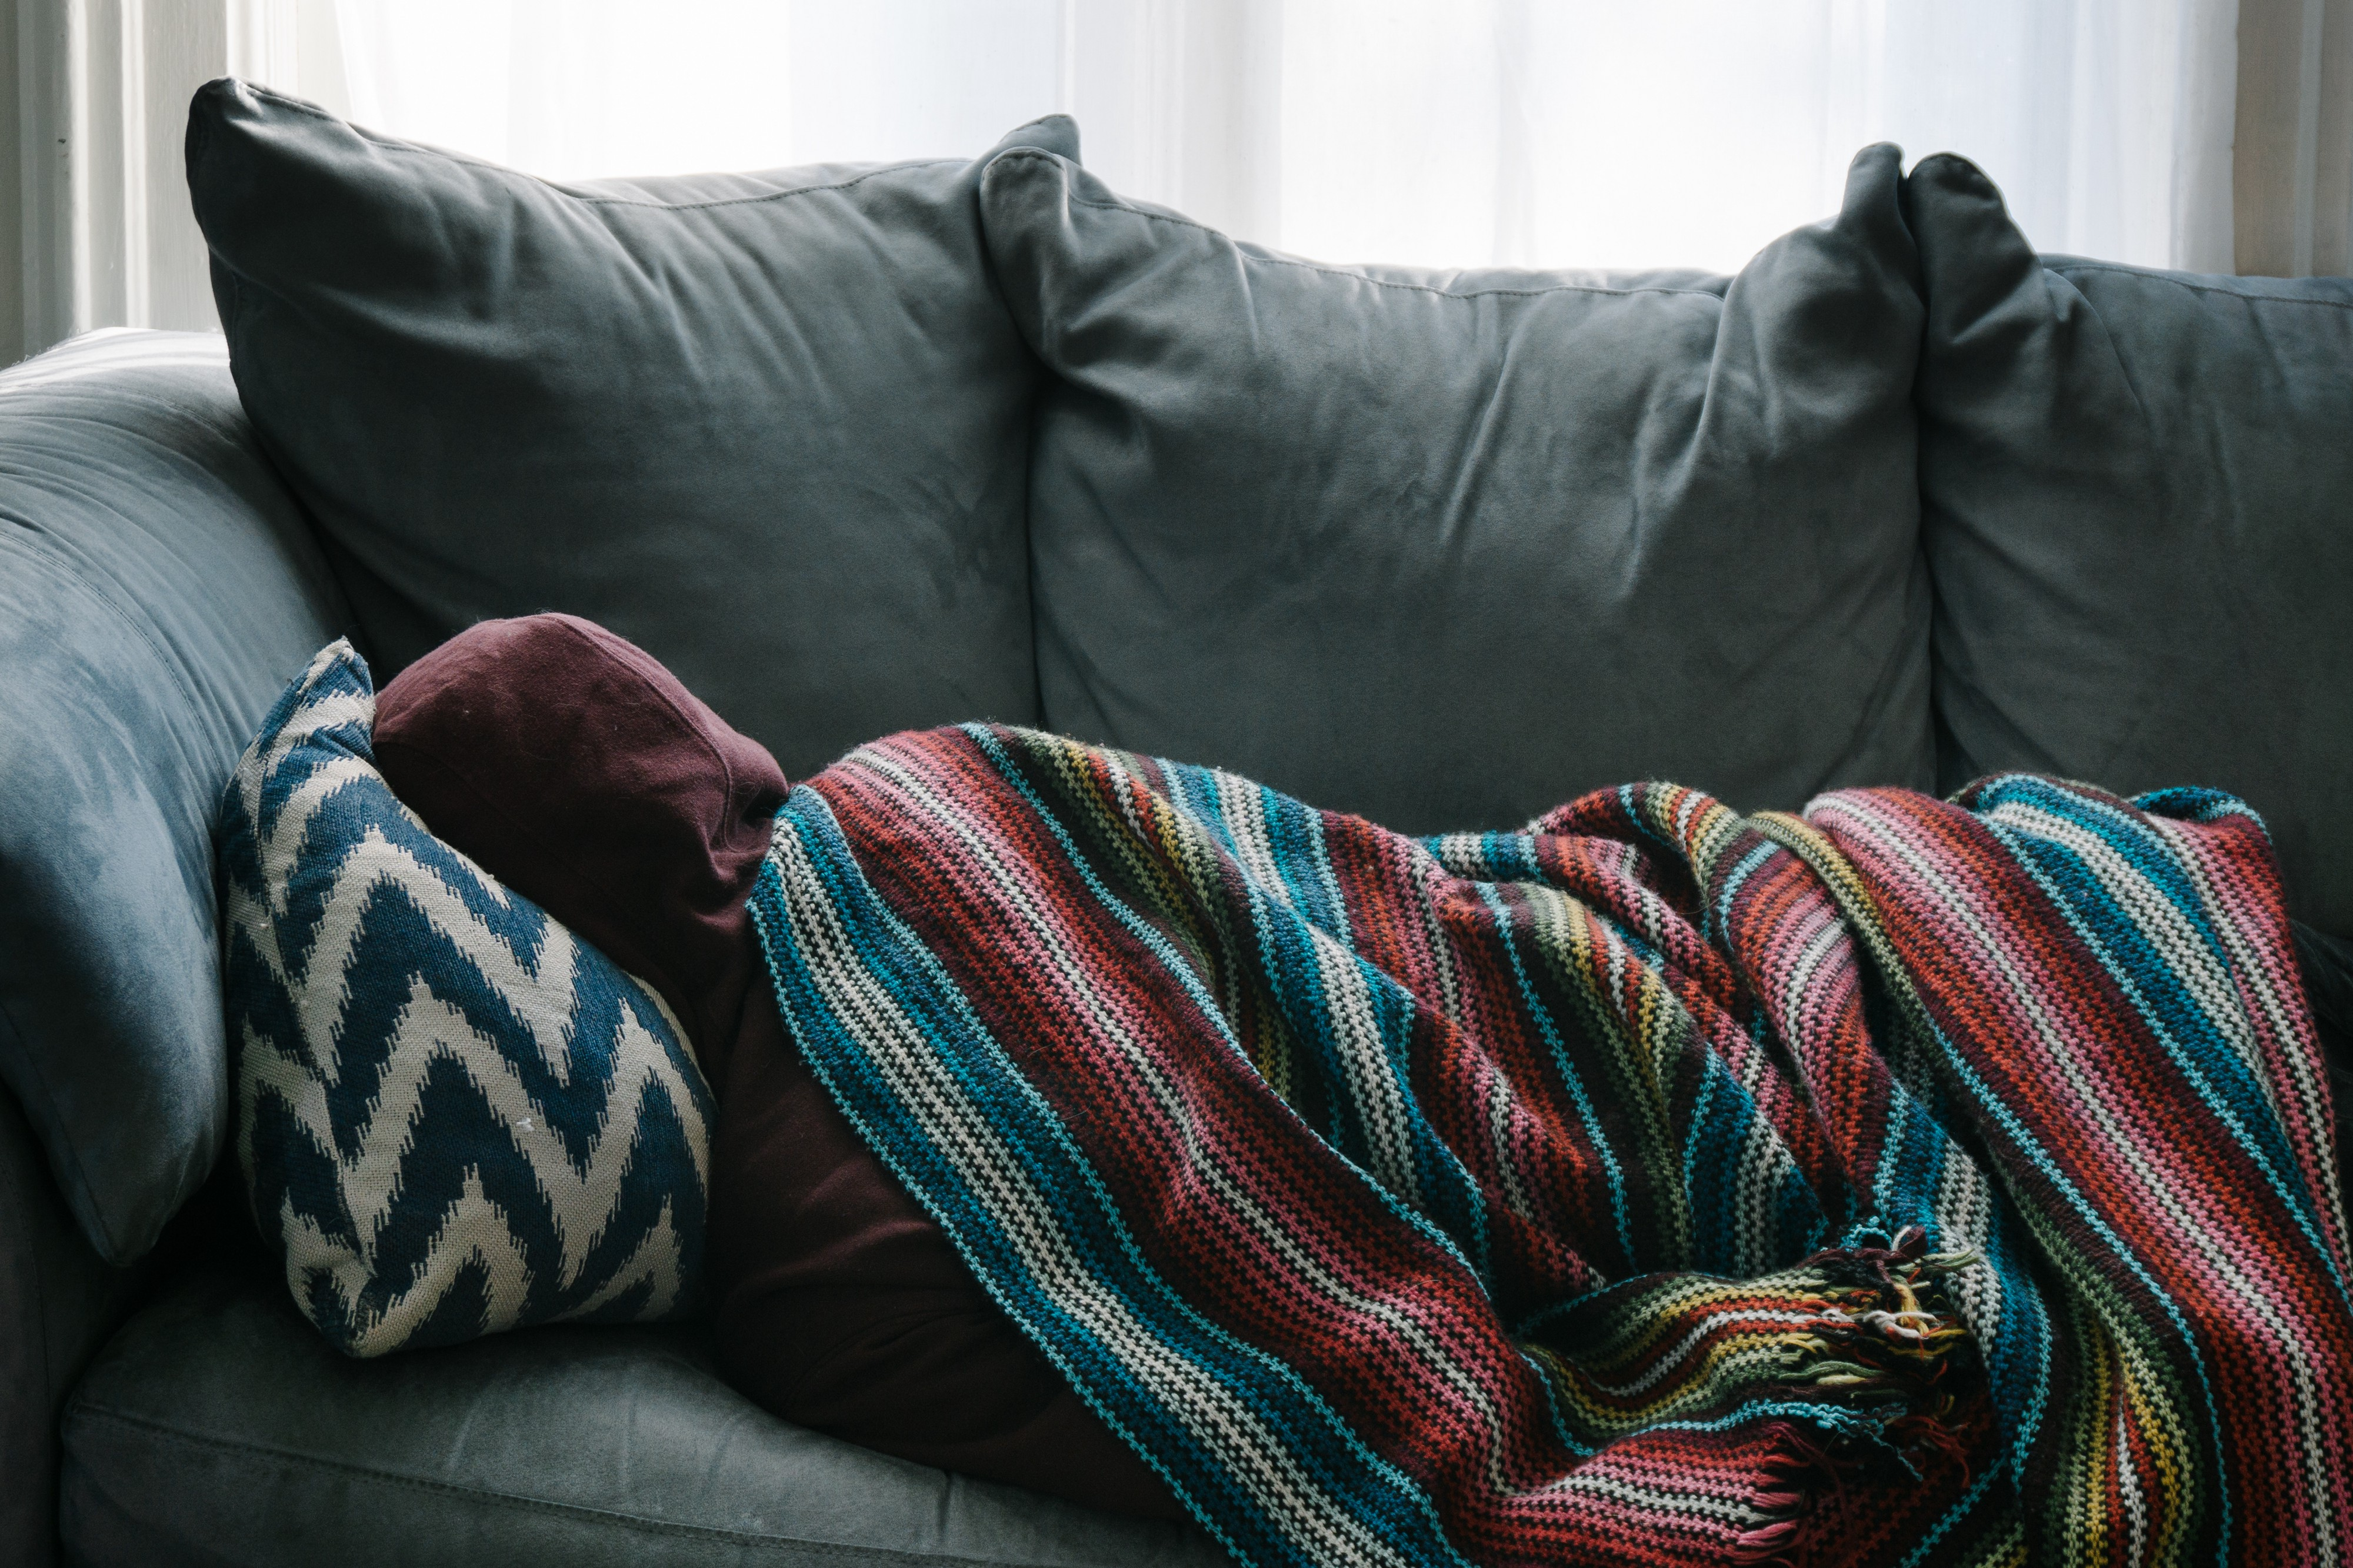 Photo of a person wearing a purple hoodie curled up on a grey couch under a striped blanket and facing away from the camera.